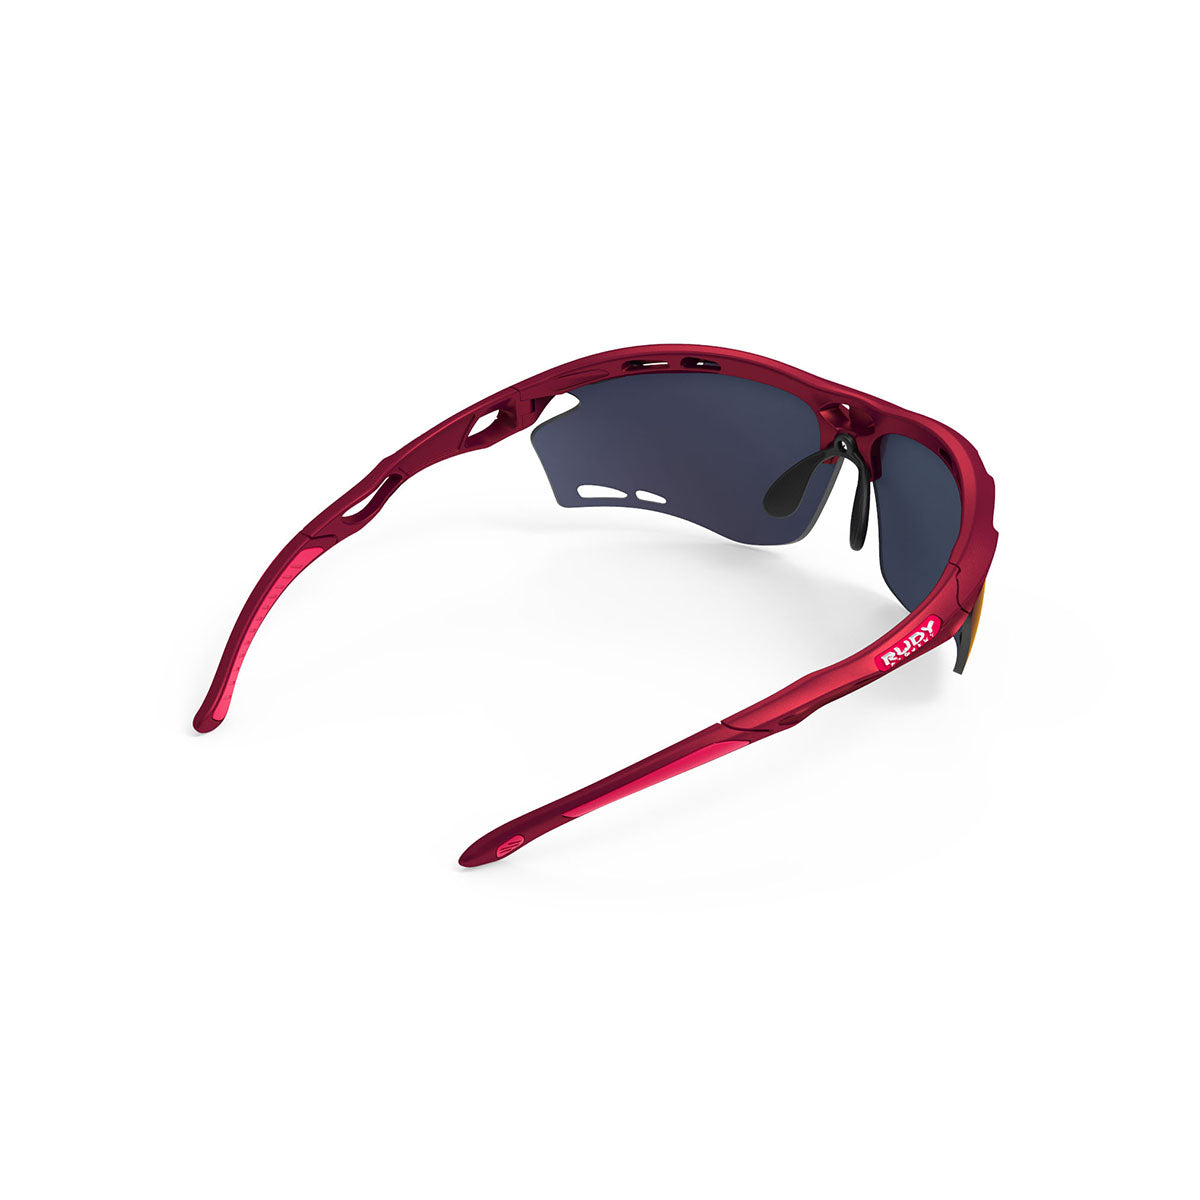 Rudy Project - Propulse - frame color: Merlot Matte - lens color: Multilaser Red - Bumper Color:  - photo angle: Top Back Angle Variant Hover Image